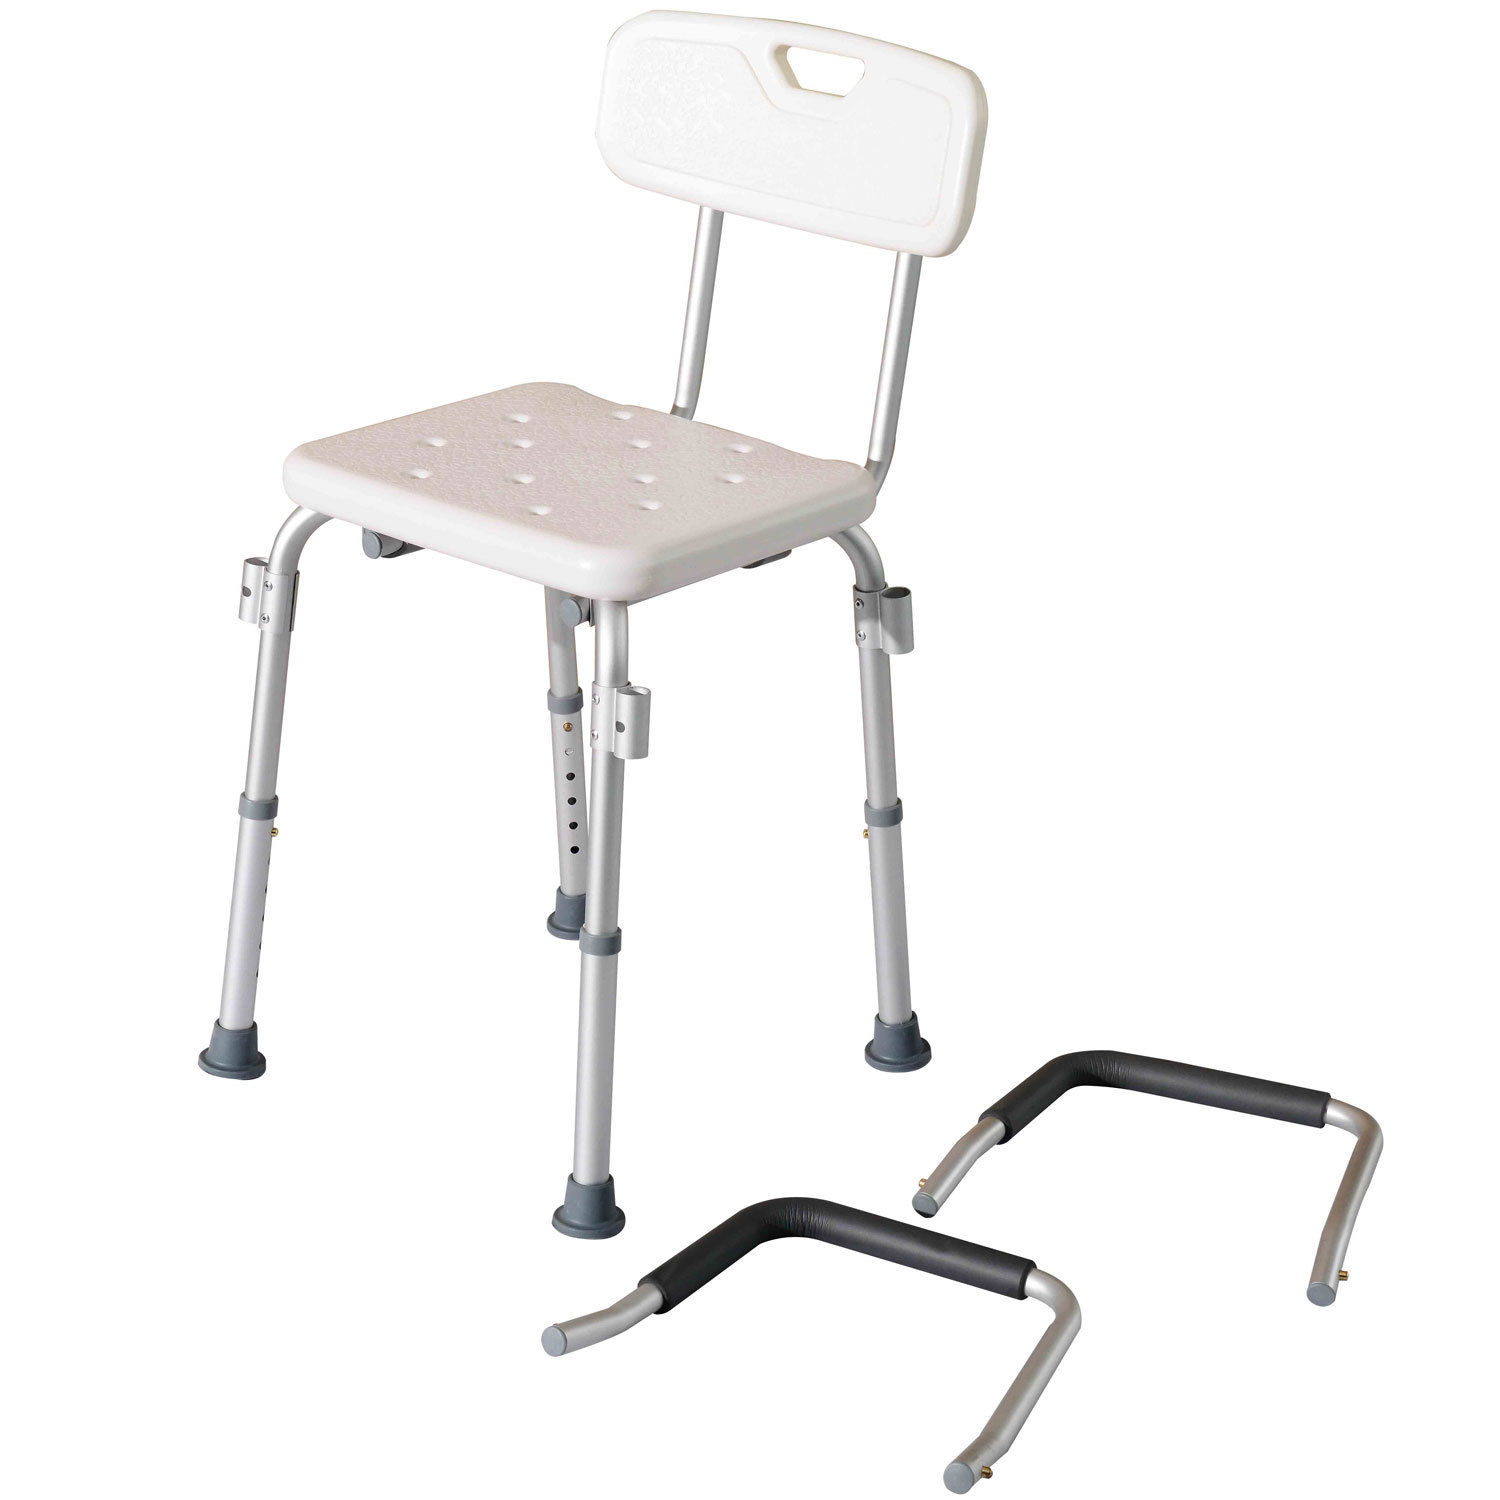 Hom Adjustable Medical Shower Chair w Arms and Backrest